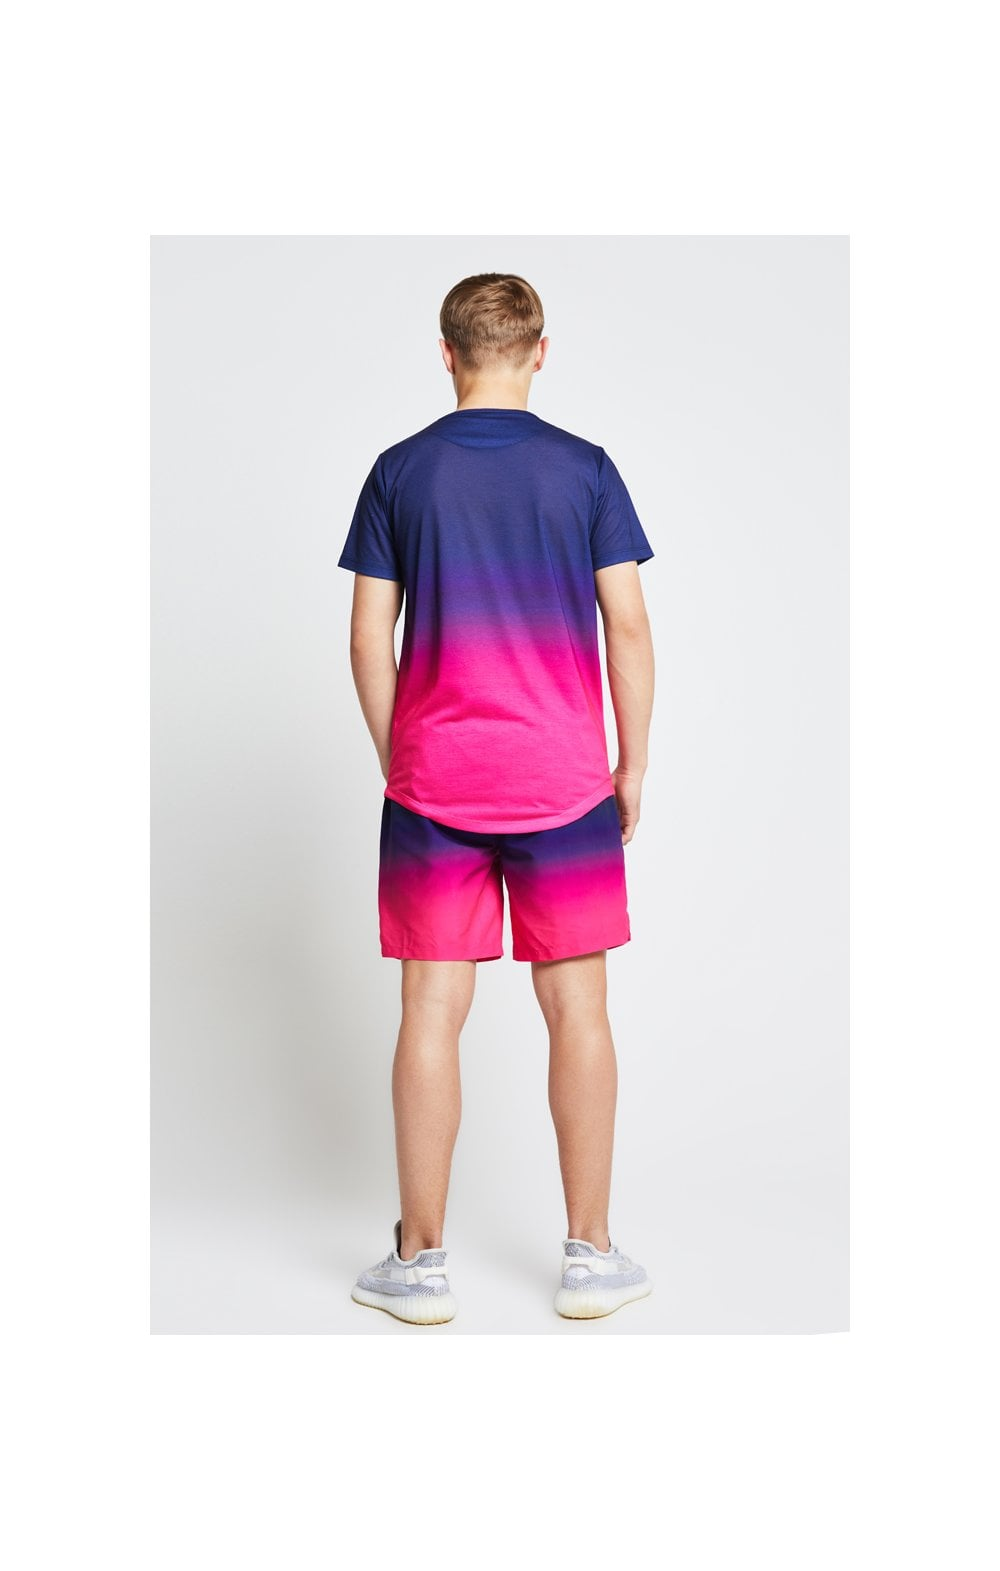 Illusive London Fade Swim Shorts - Navy & Pink (4)